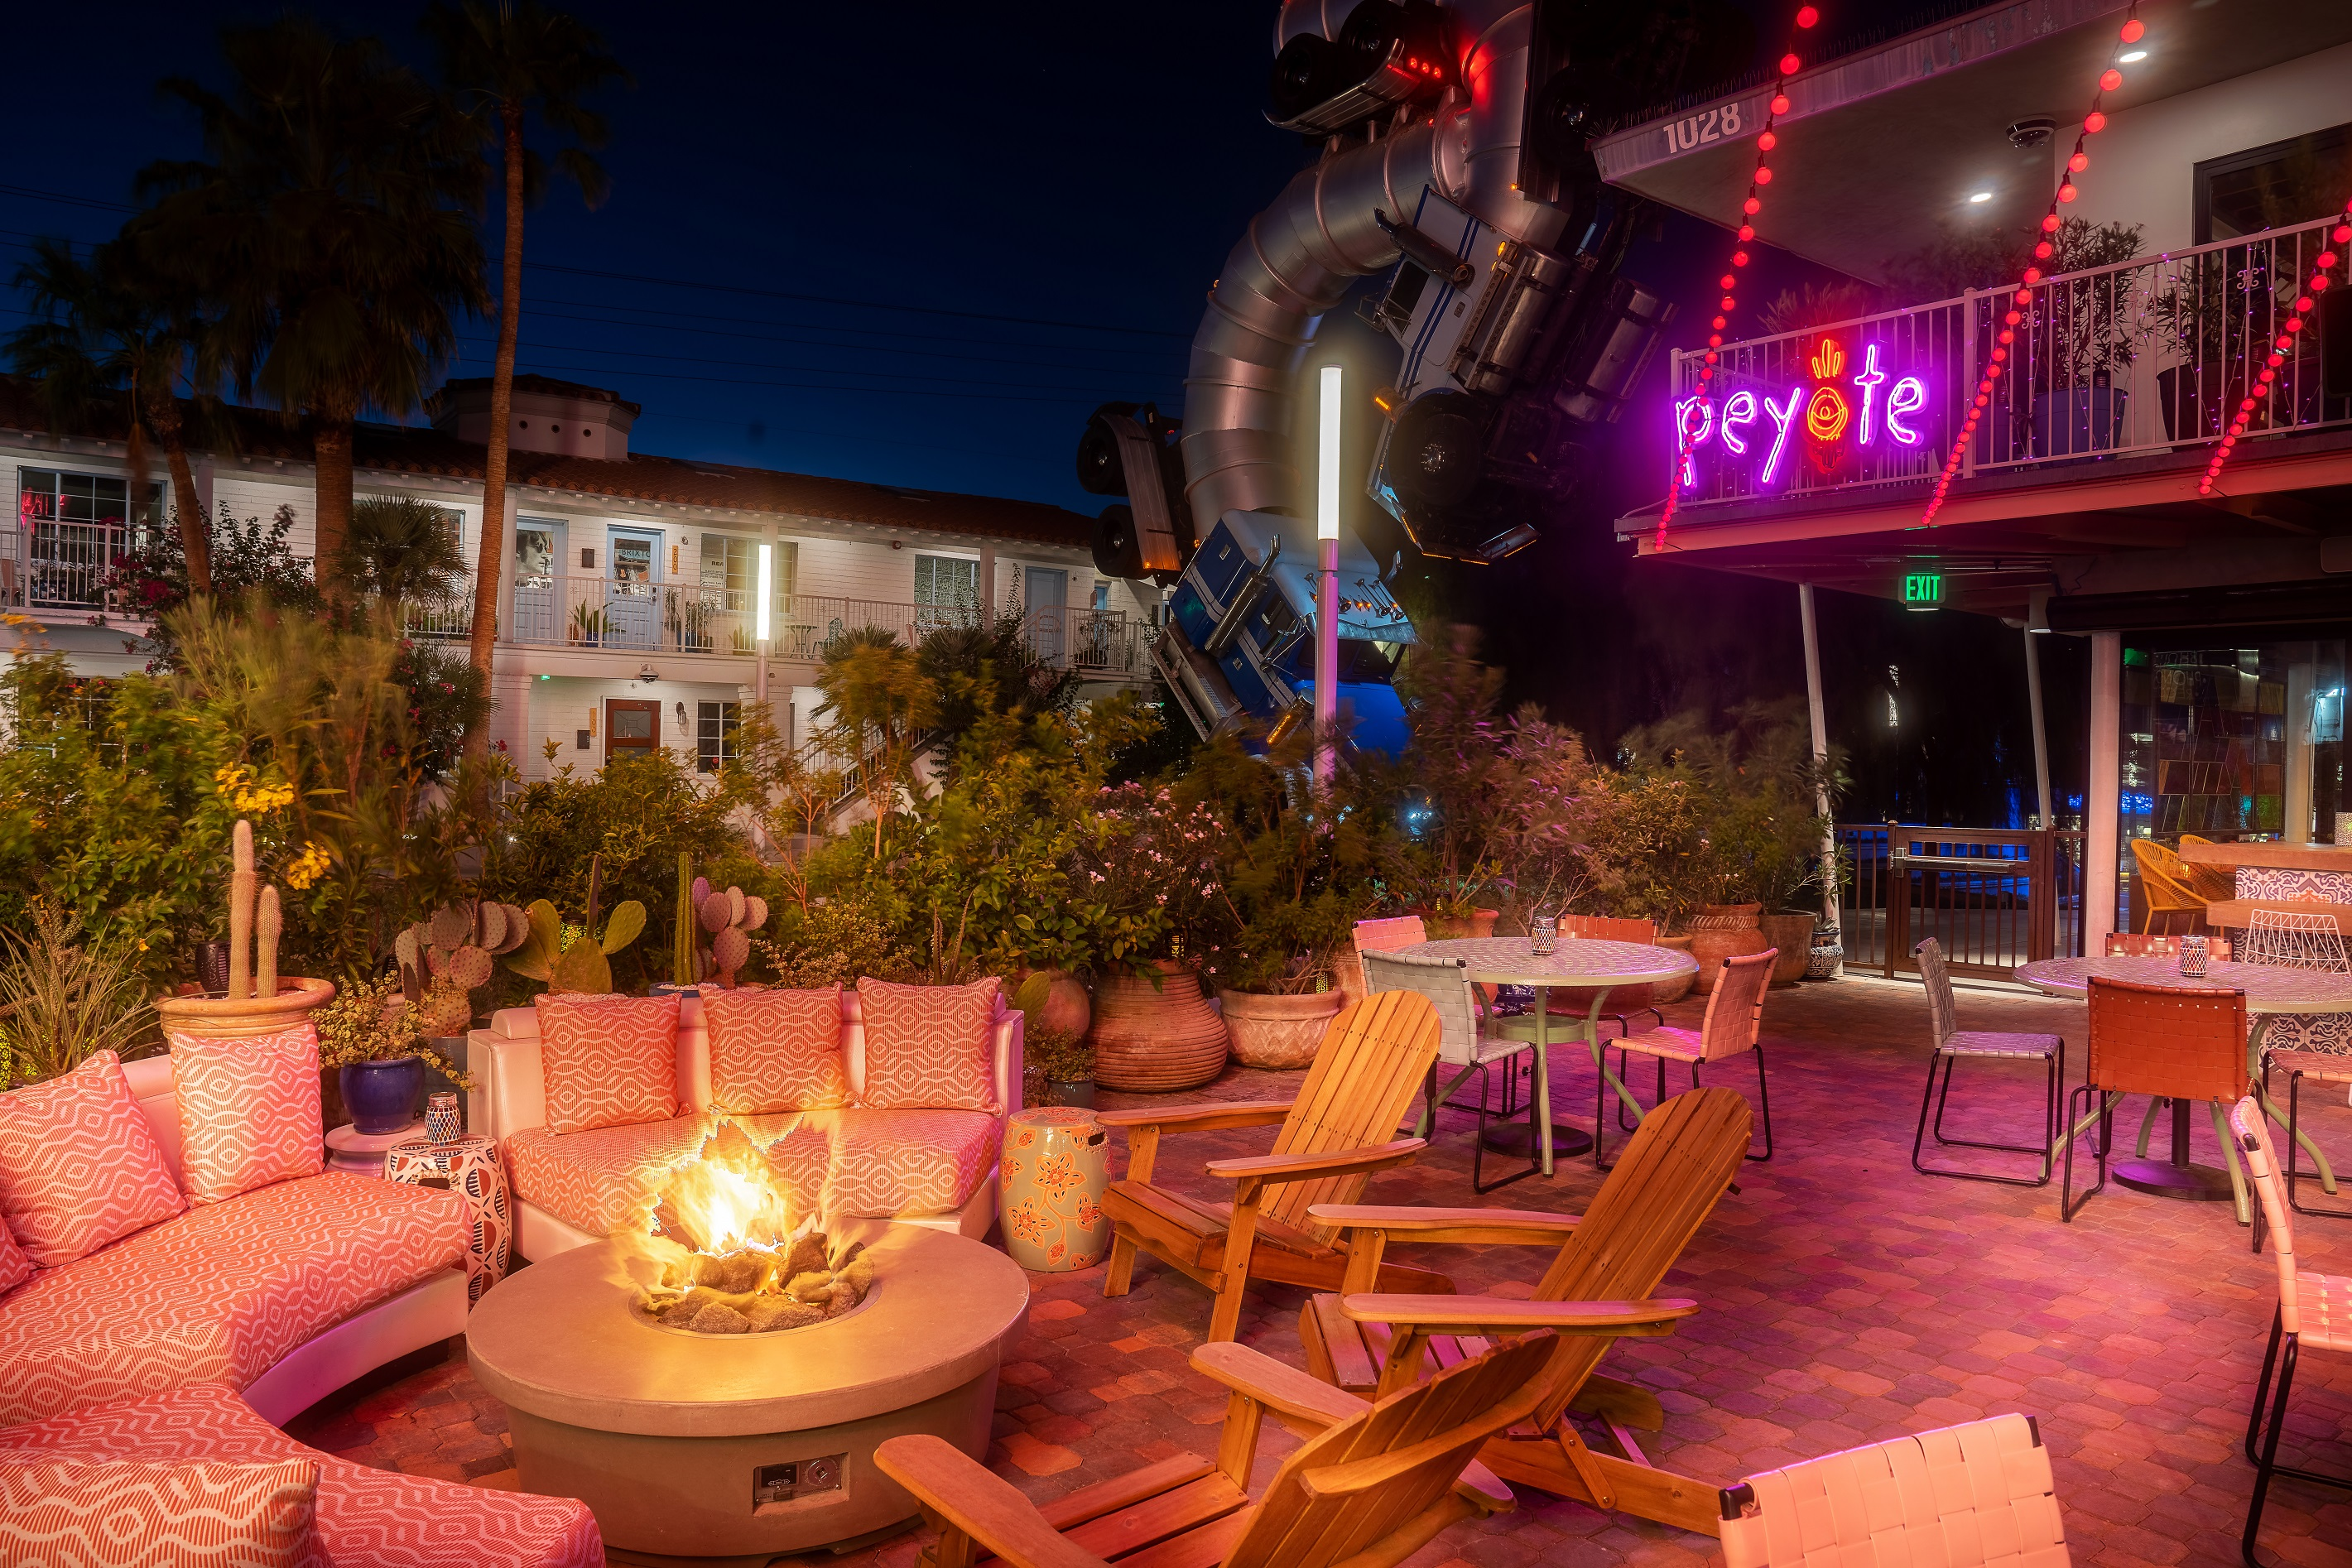 A patio with chairs and tables and a neon sign at night.